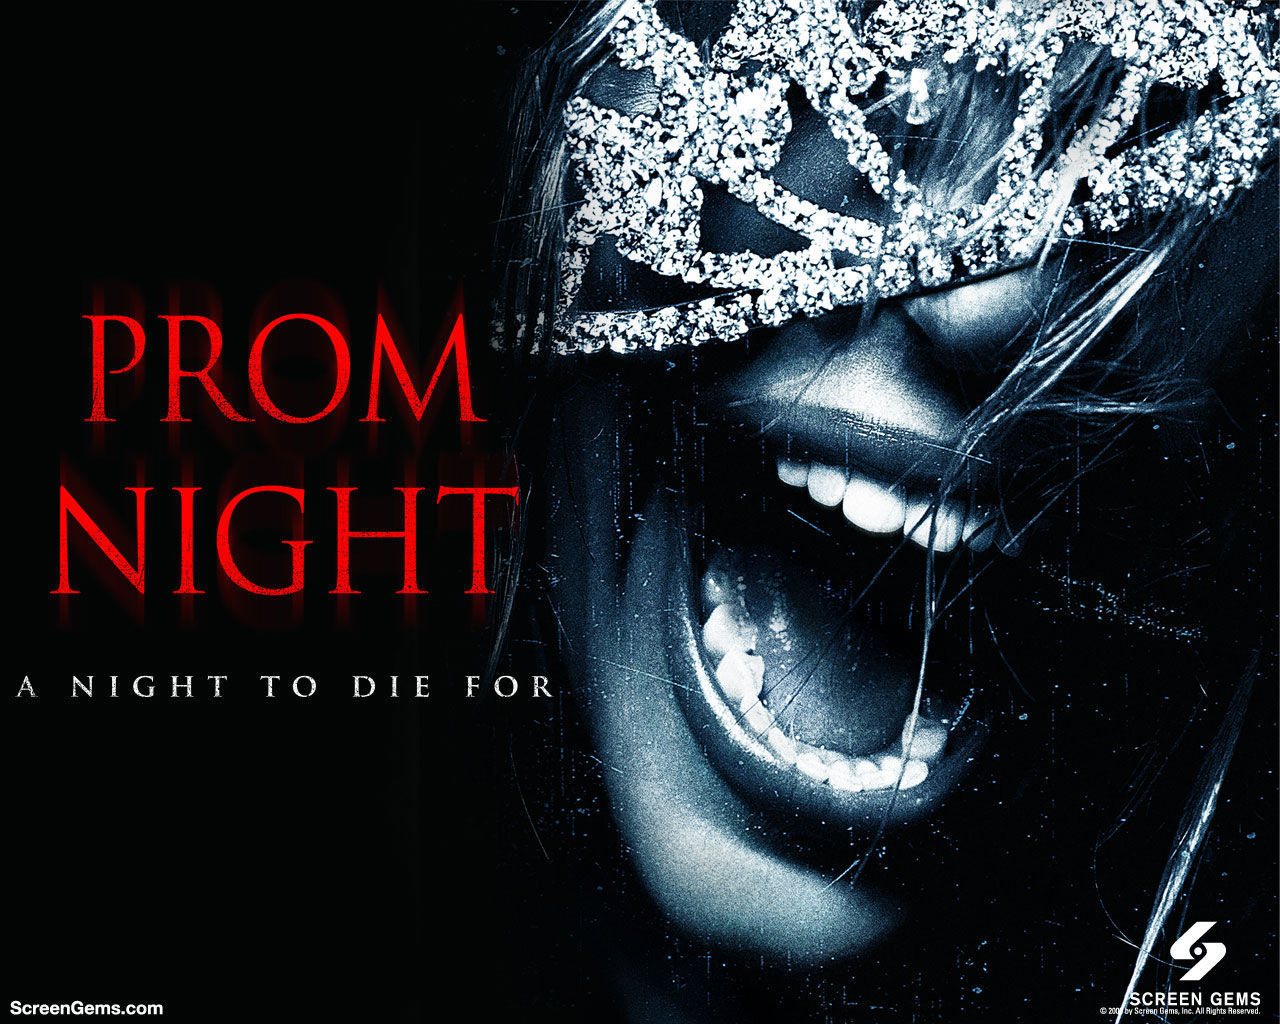 Prom Night Images HD Wallpaper And Background Photos